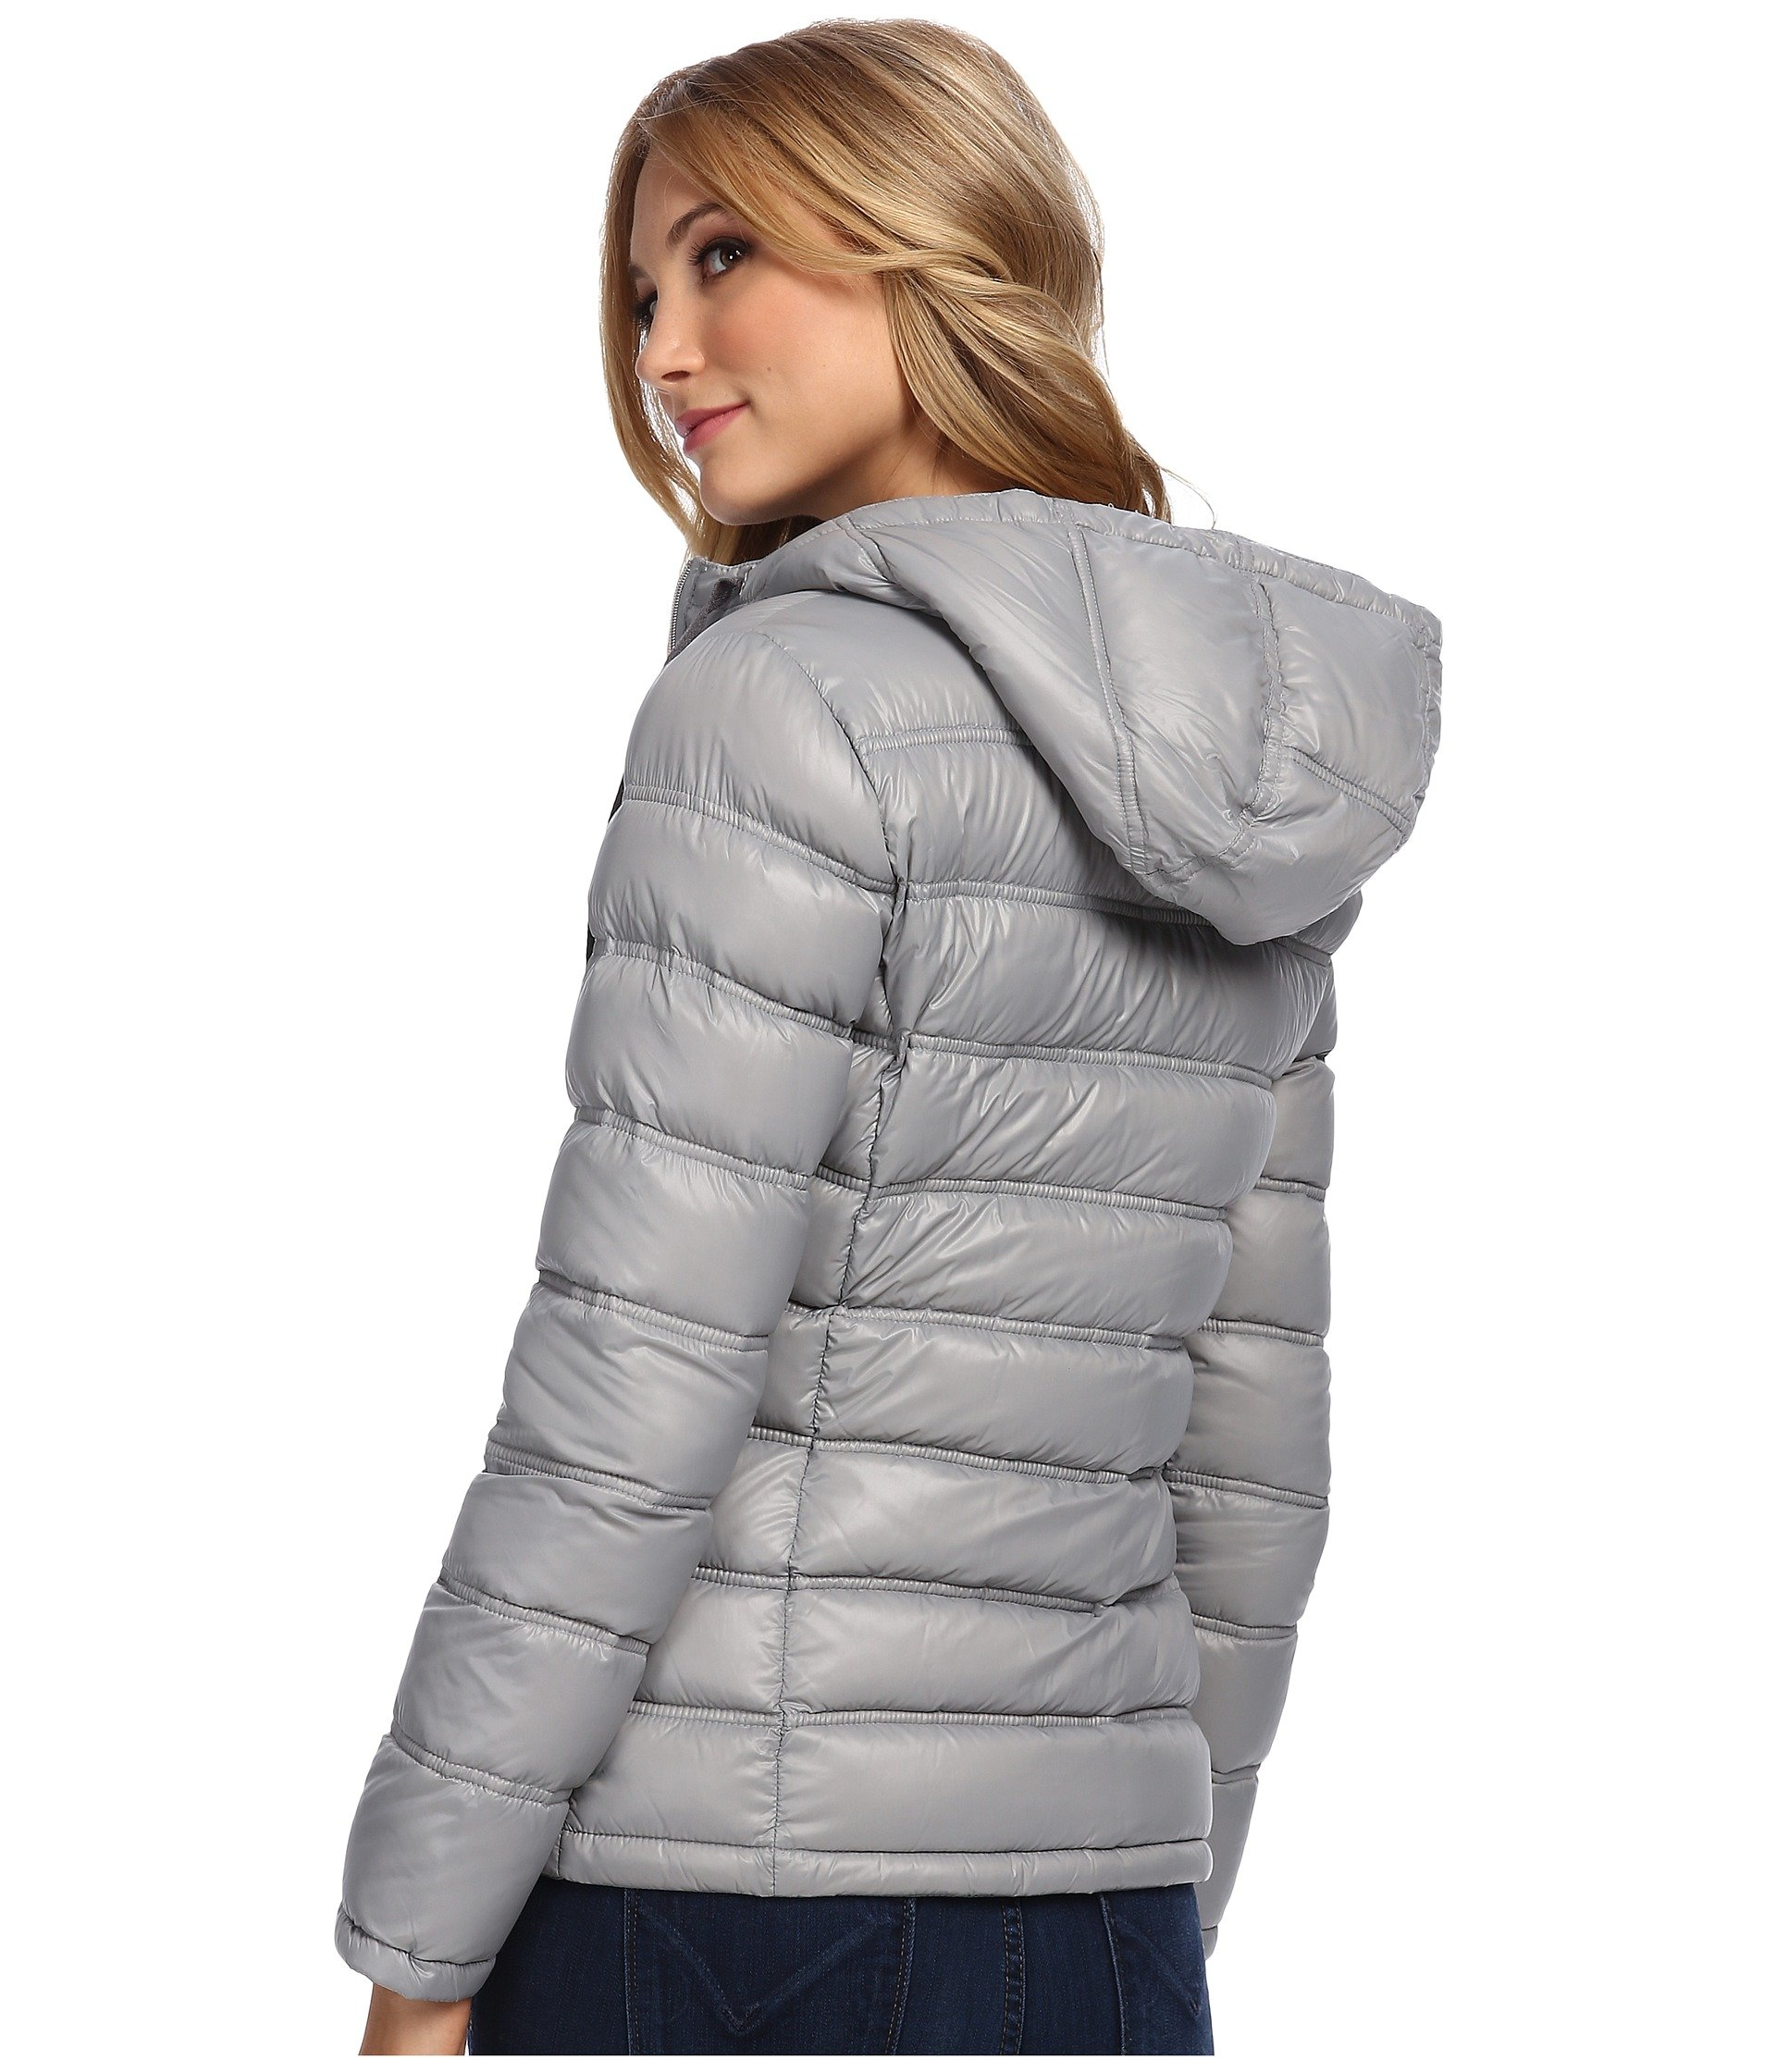 dfbb9f768a93 Lyst calvin klein zipfront puffy packable down jacket in metallic jpg  1920x2240 Down jacket calvin klein